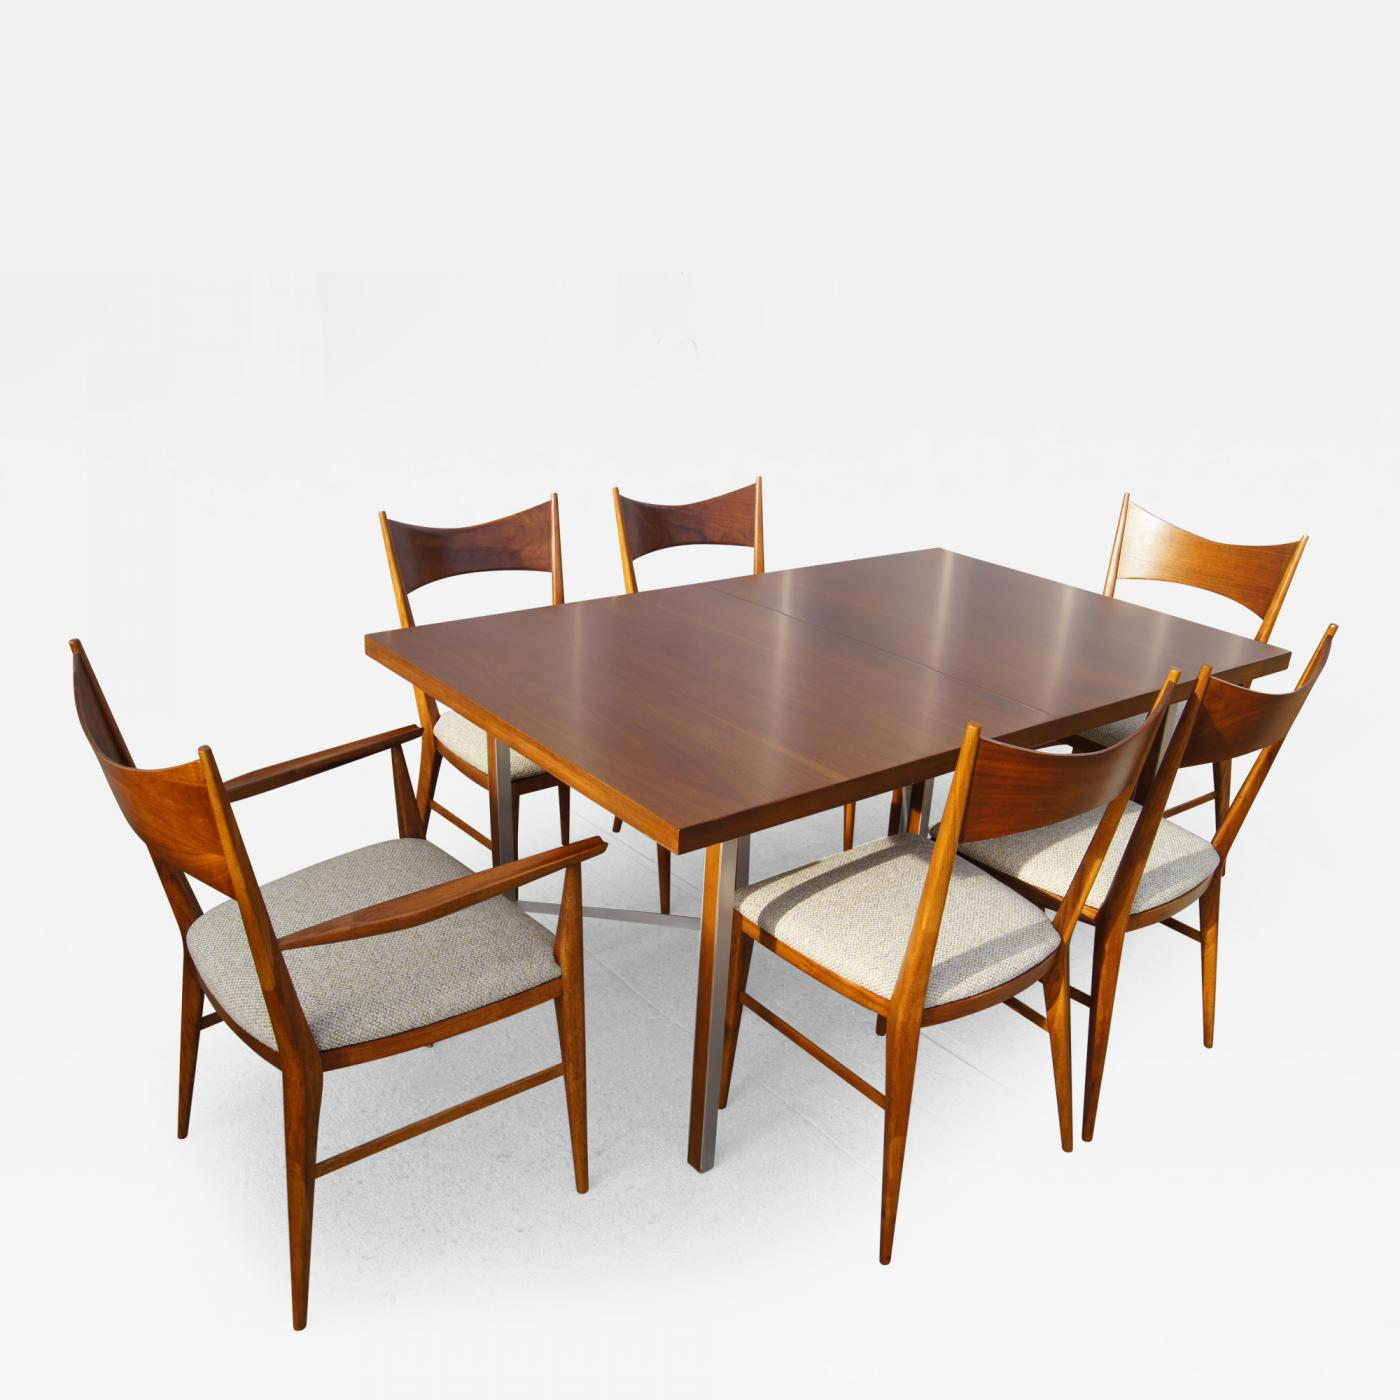 paul mccobb irwin group walnut dining table and six chairs by paul mccobb for calvin. Black Bedroom Furniture Sets. Home Design Ideas